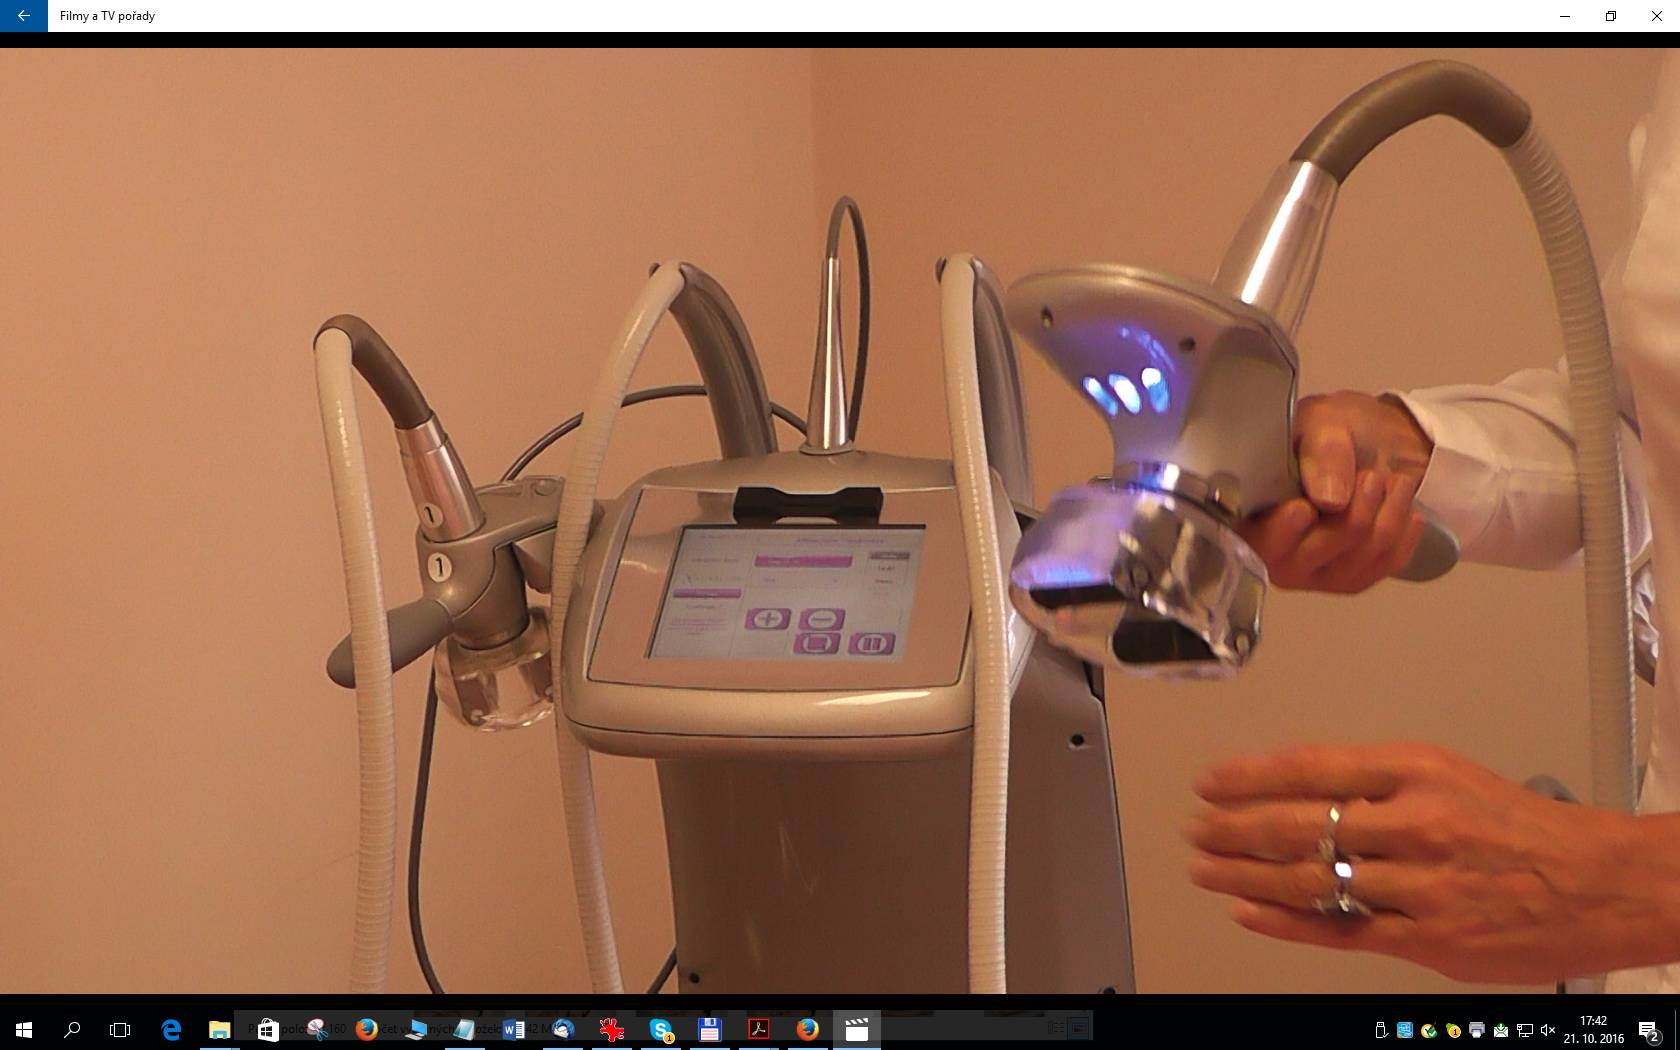 Lipomassage to remove fat. Vacum device is used also for lipomassage cellulite removal. Prague